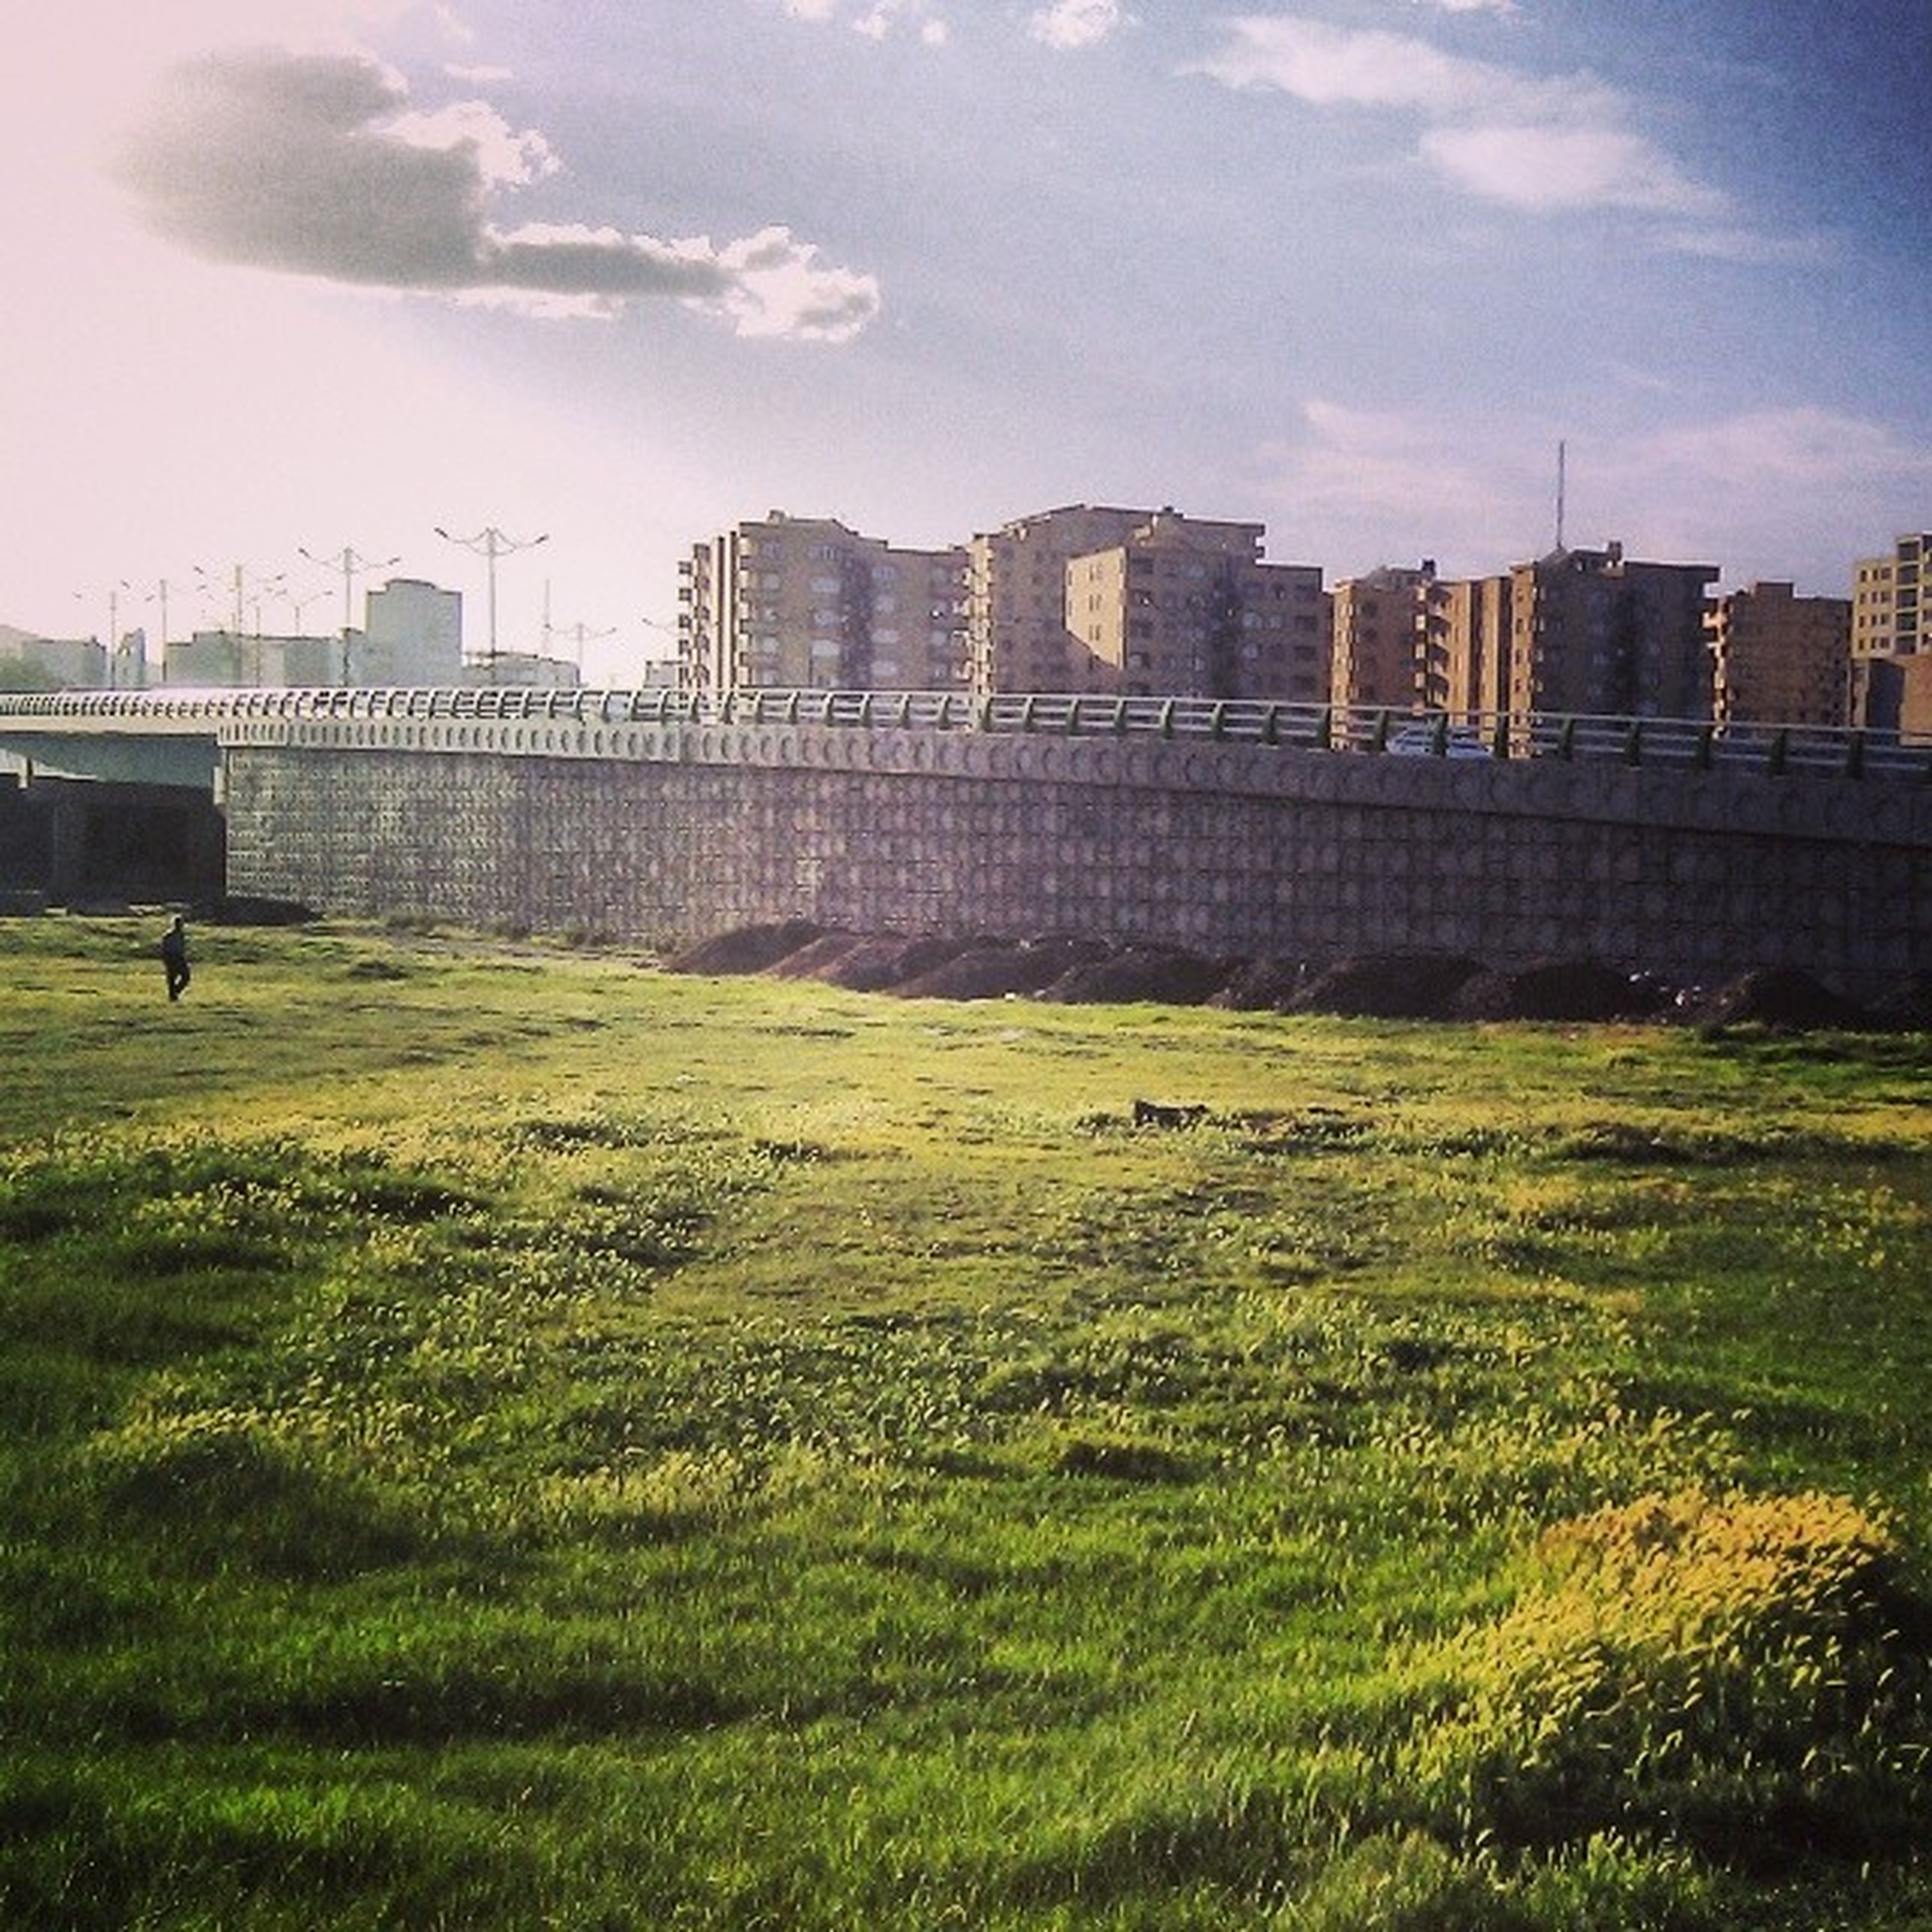 architecture, building exterior, built structure, grass, city, sky, field, building, green color, skyscraper, growth, tower, tree, lawn, grassy, sunlight, modern, day, cloud - sky, residential building